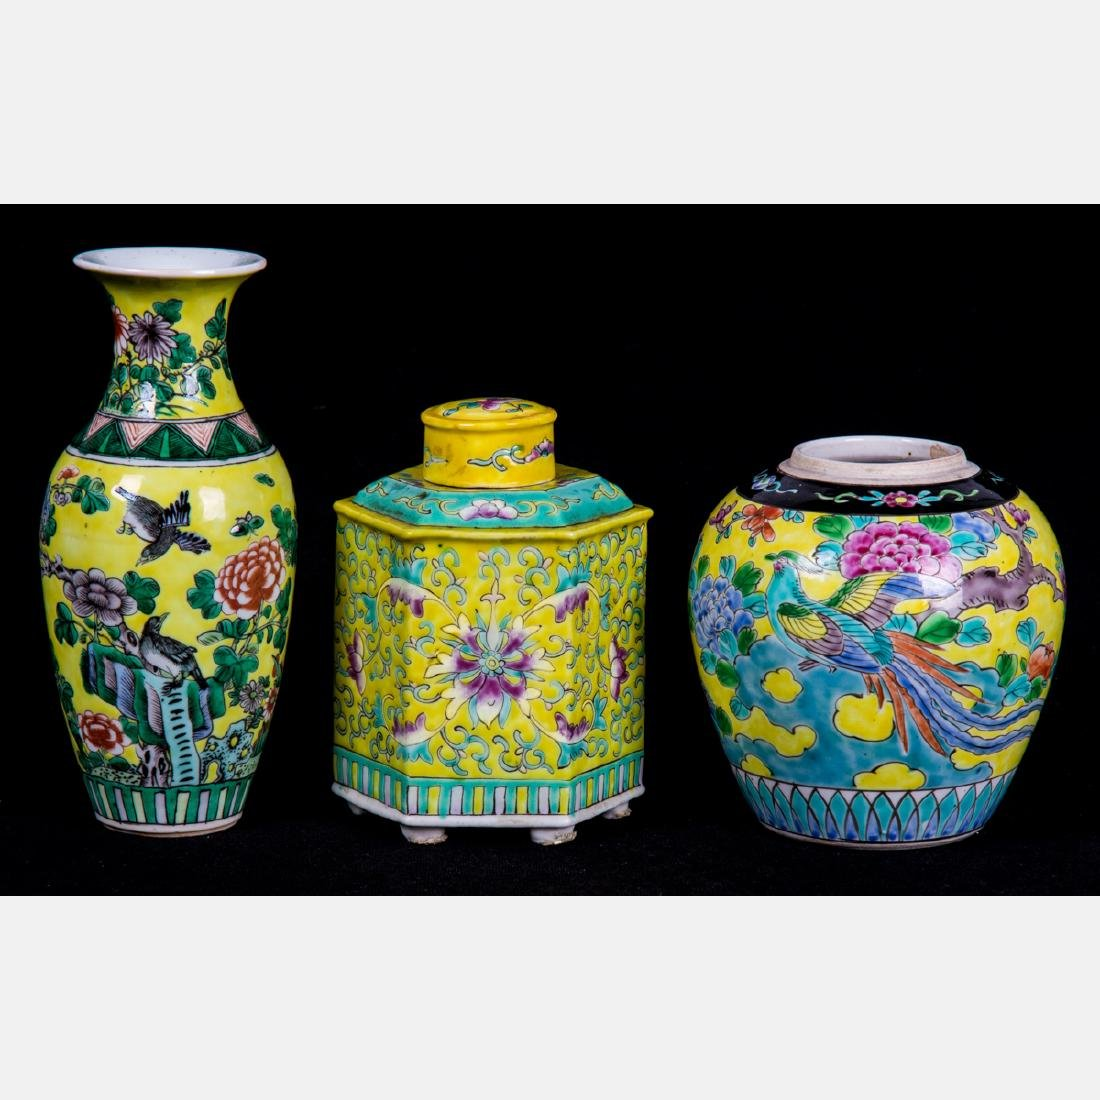 A Group of Three Chinese Famille Jaune Serving and